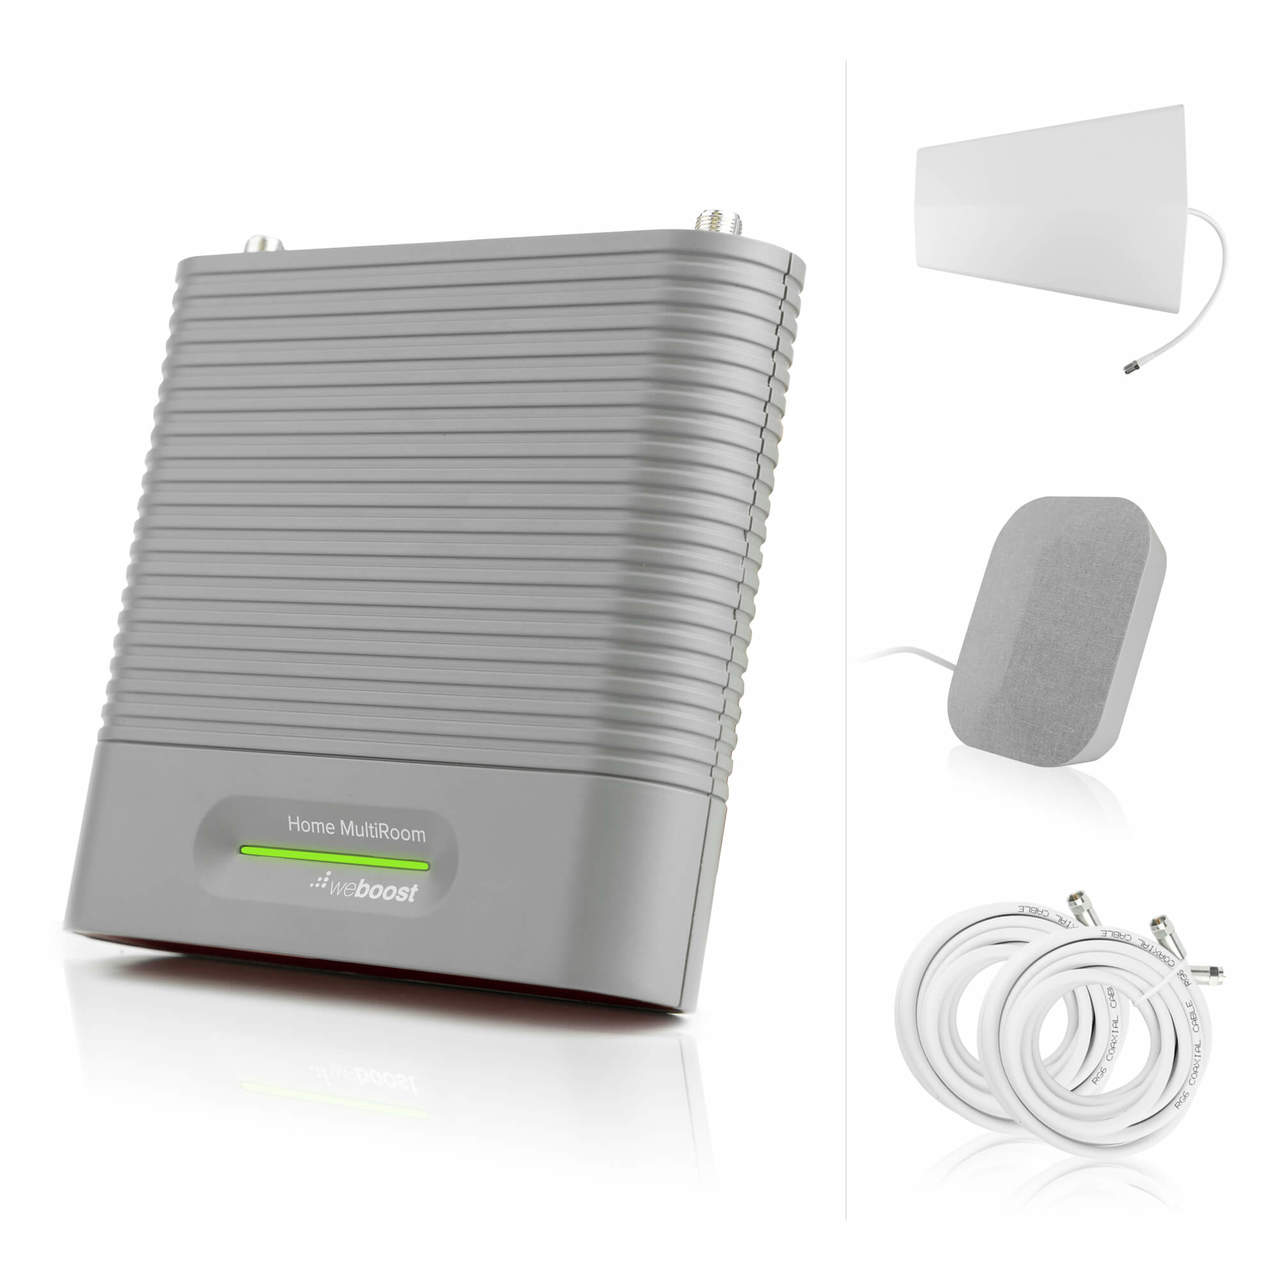 weBoost - Ensemble amplificateur de signal cellulaire weBoost Home MultiRoom - 650144